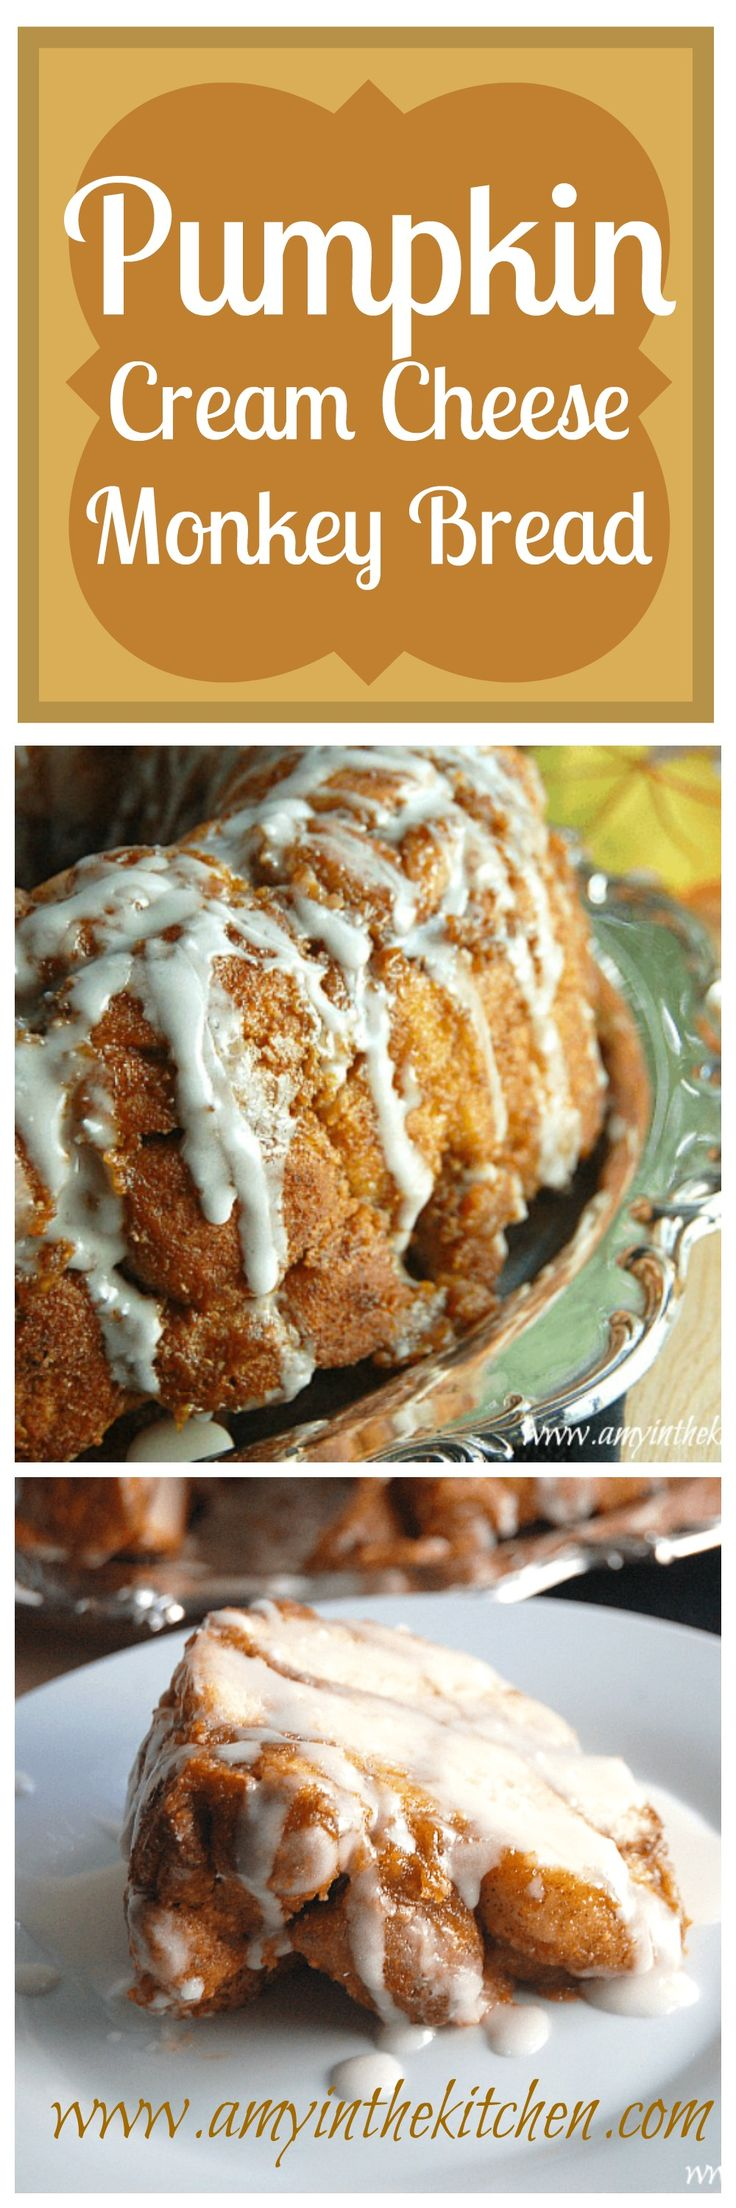 A delicious recipe for Pumpkin Cream Cheese Monkey Bread. Yummy!